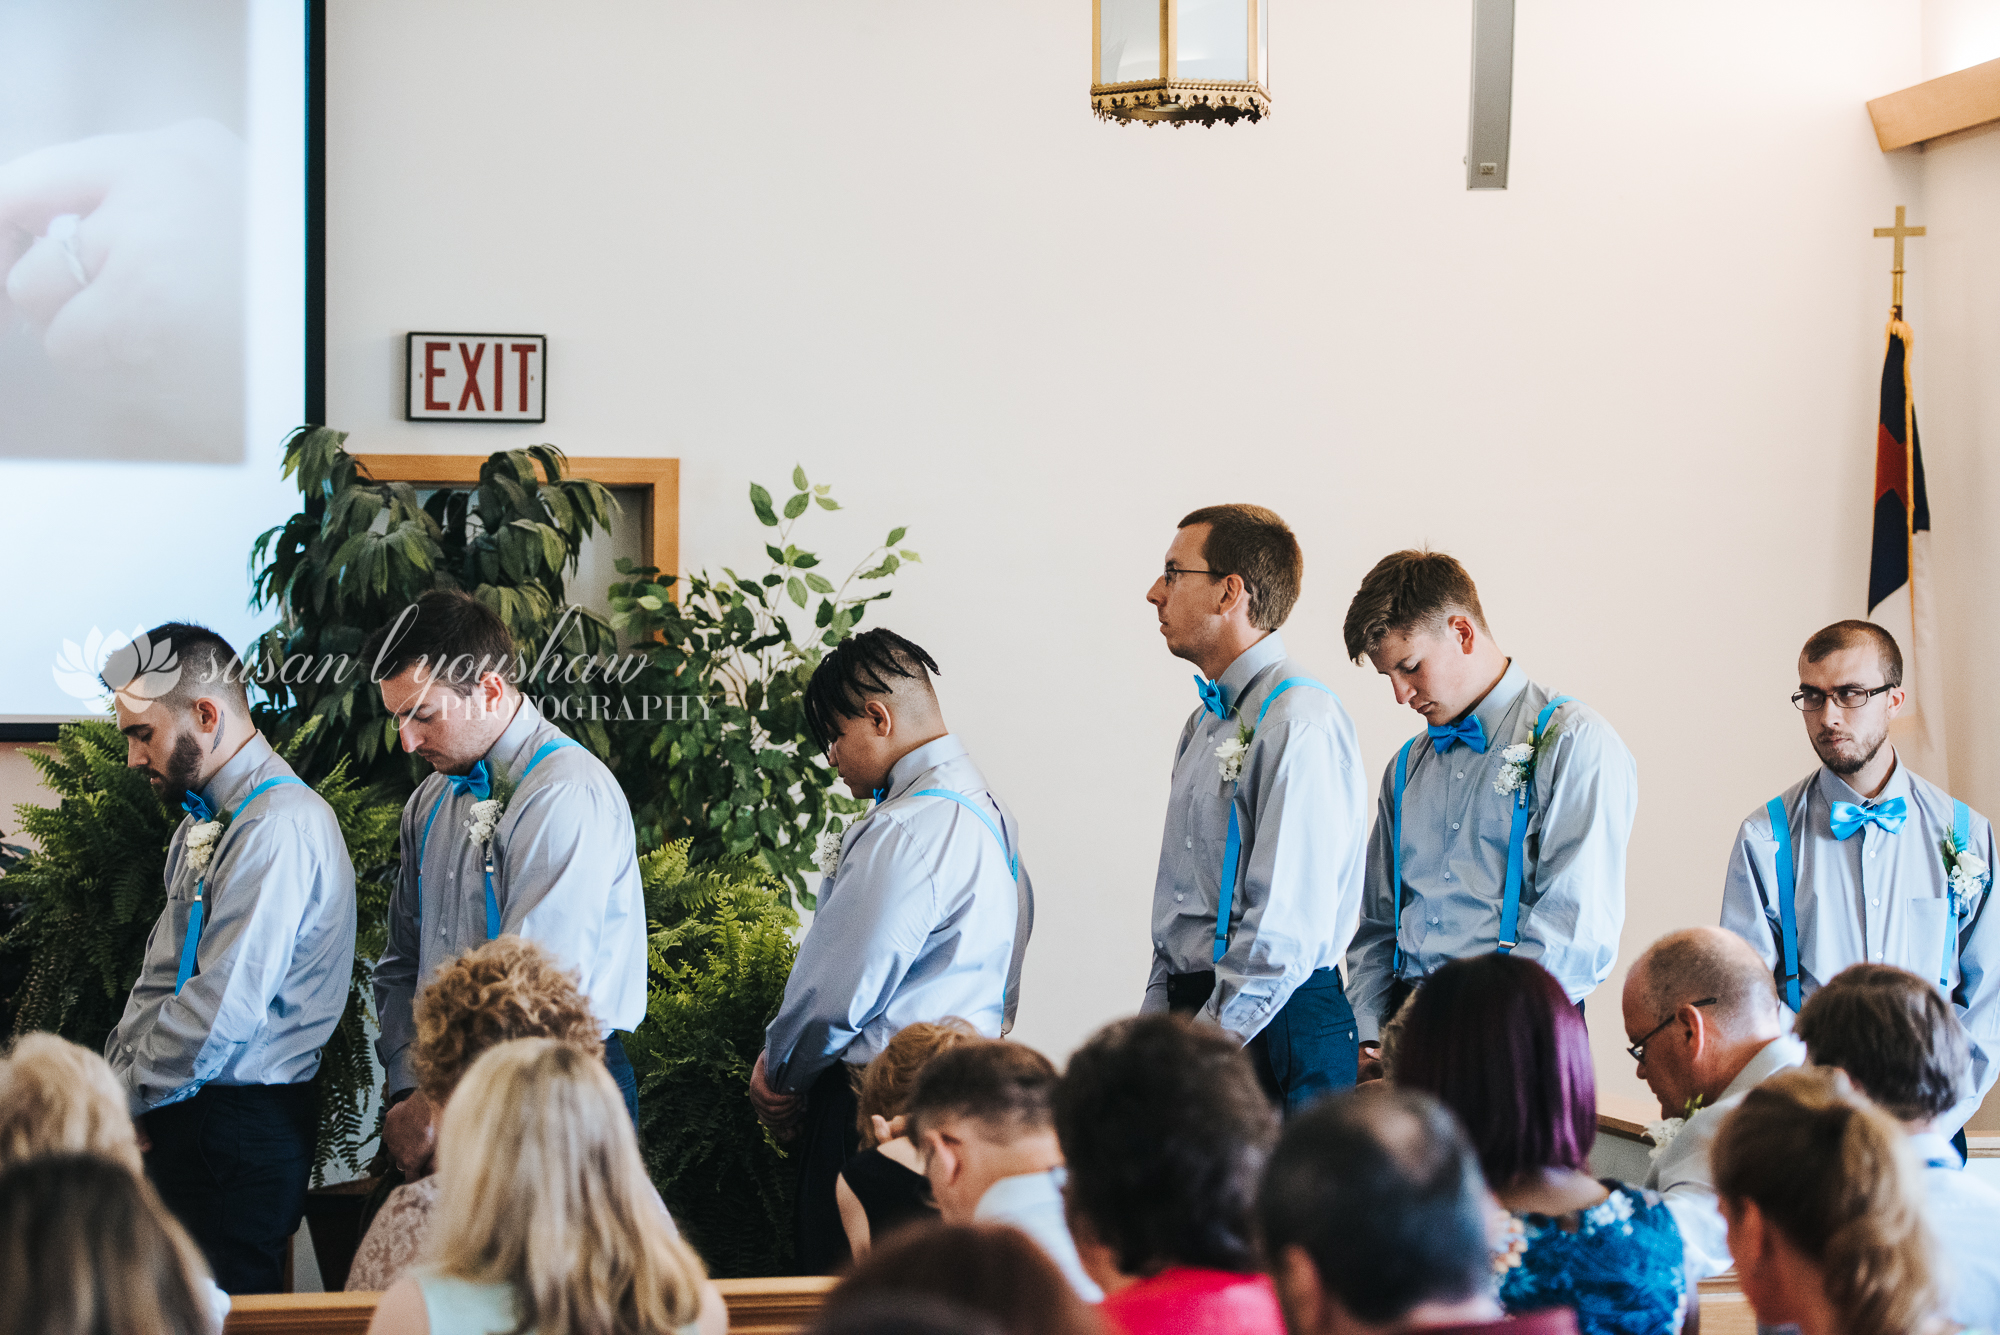 Katelyn and Wes Wedding Photos 07-13-2019 SLY Photography-64.jpg